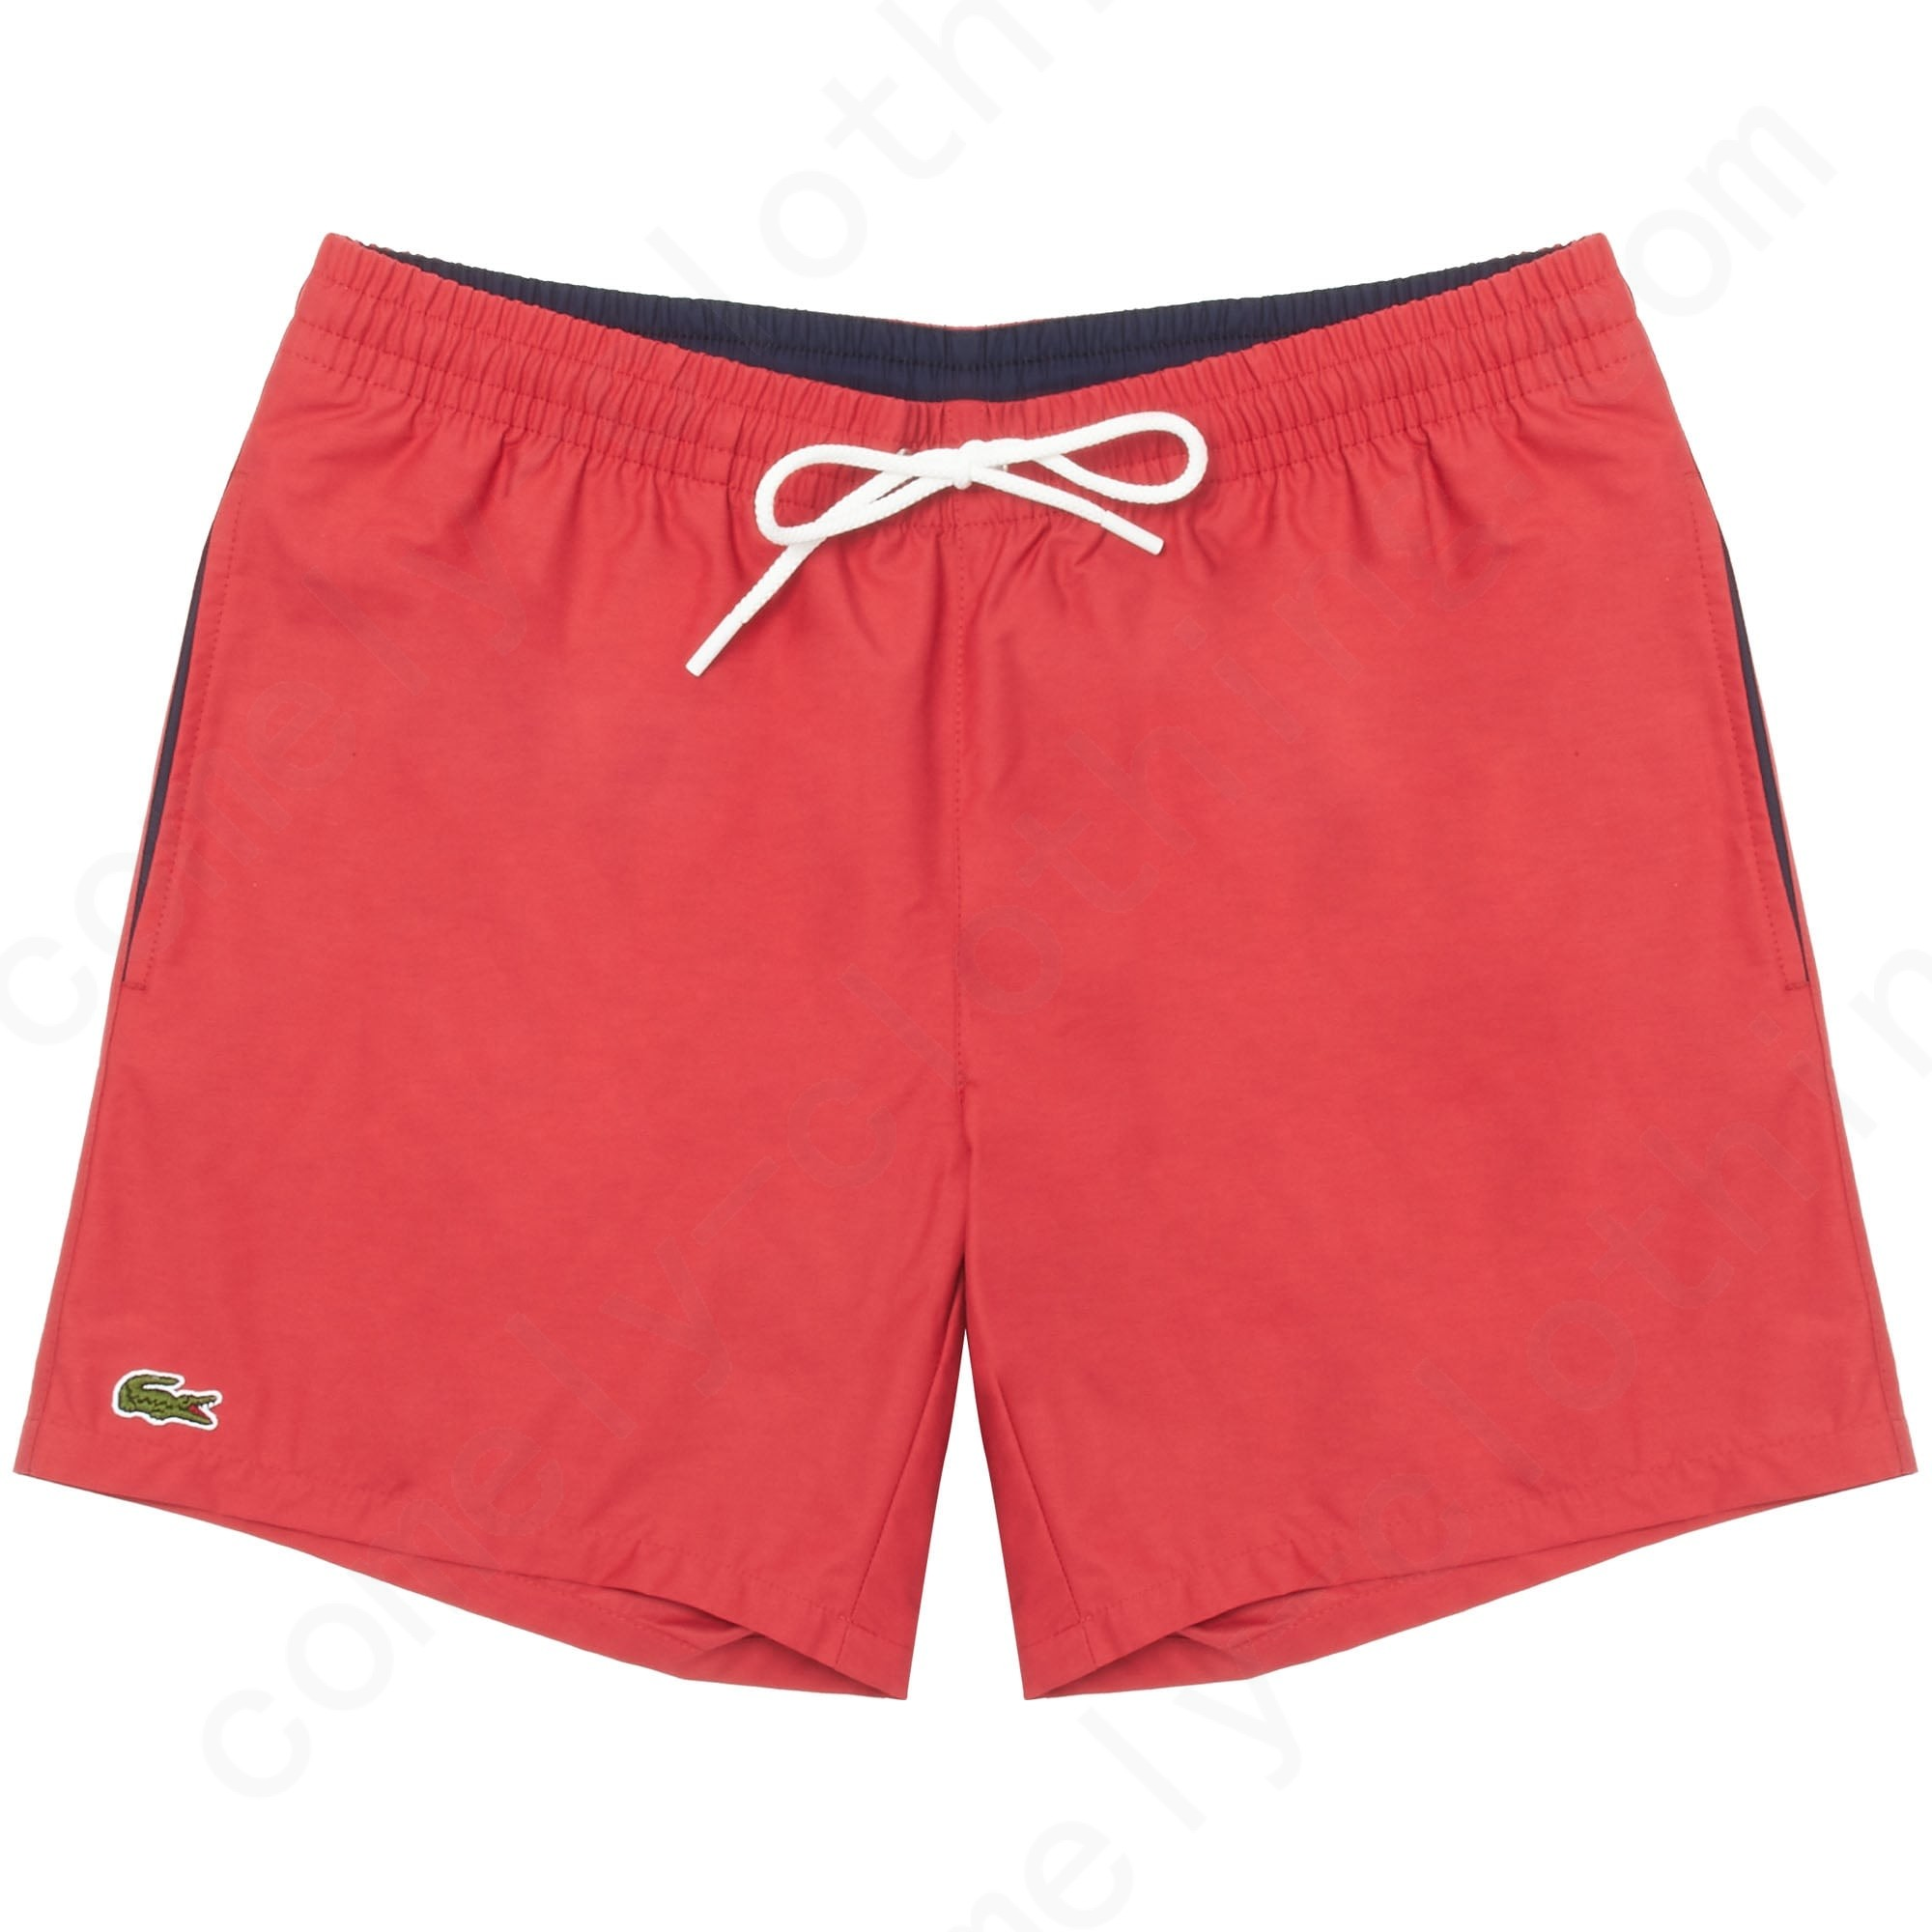 Lacoste Intense Red Swimming Shorts Mens - Lacoste Intense Red Swimming Shorts Mens